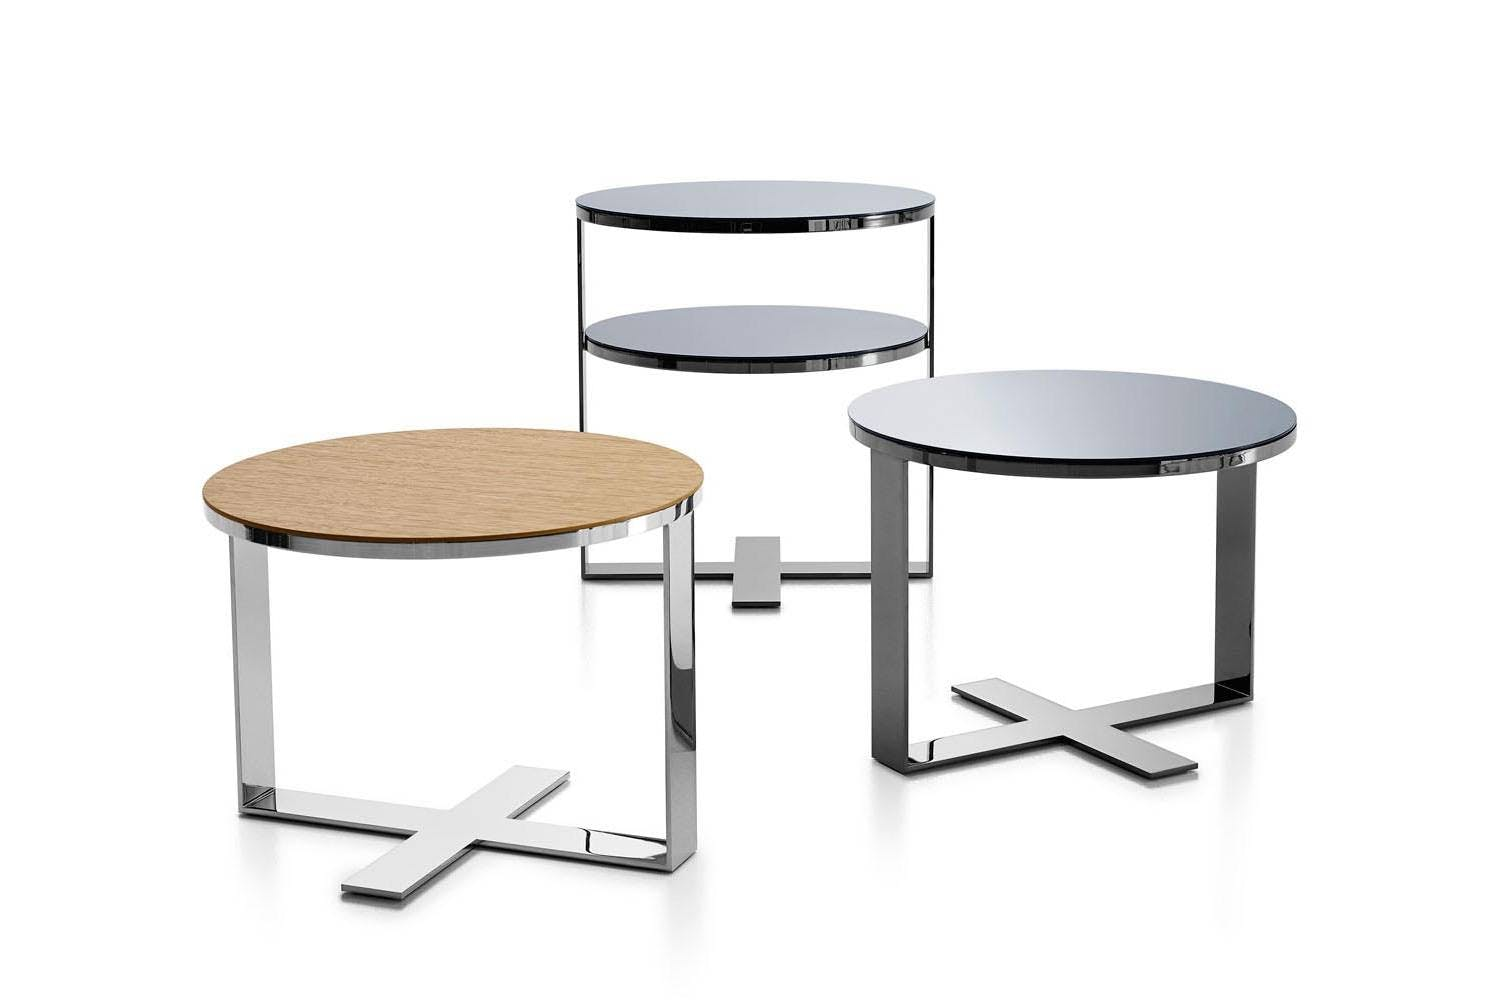 eileen small table by antonio citterio for b b italia space furniture. Black Bedroom Furniture Sets. Home Design Ideas